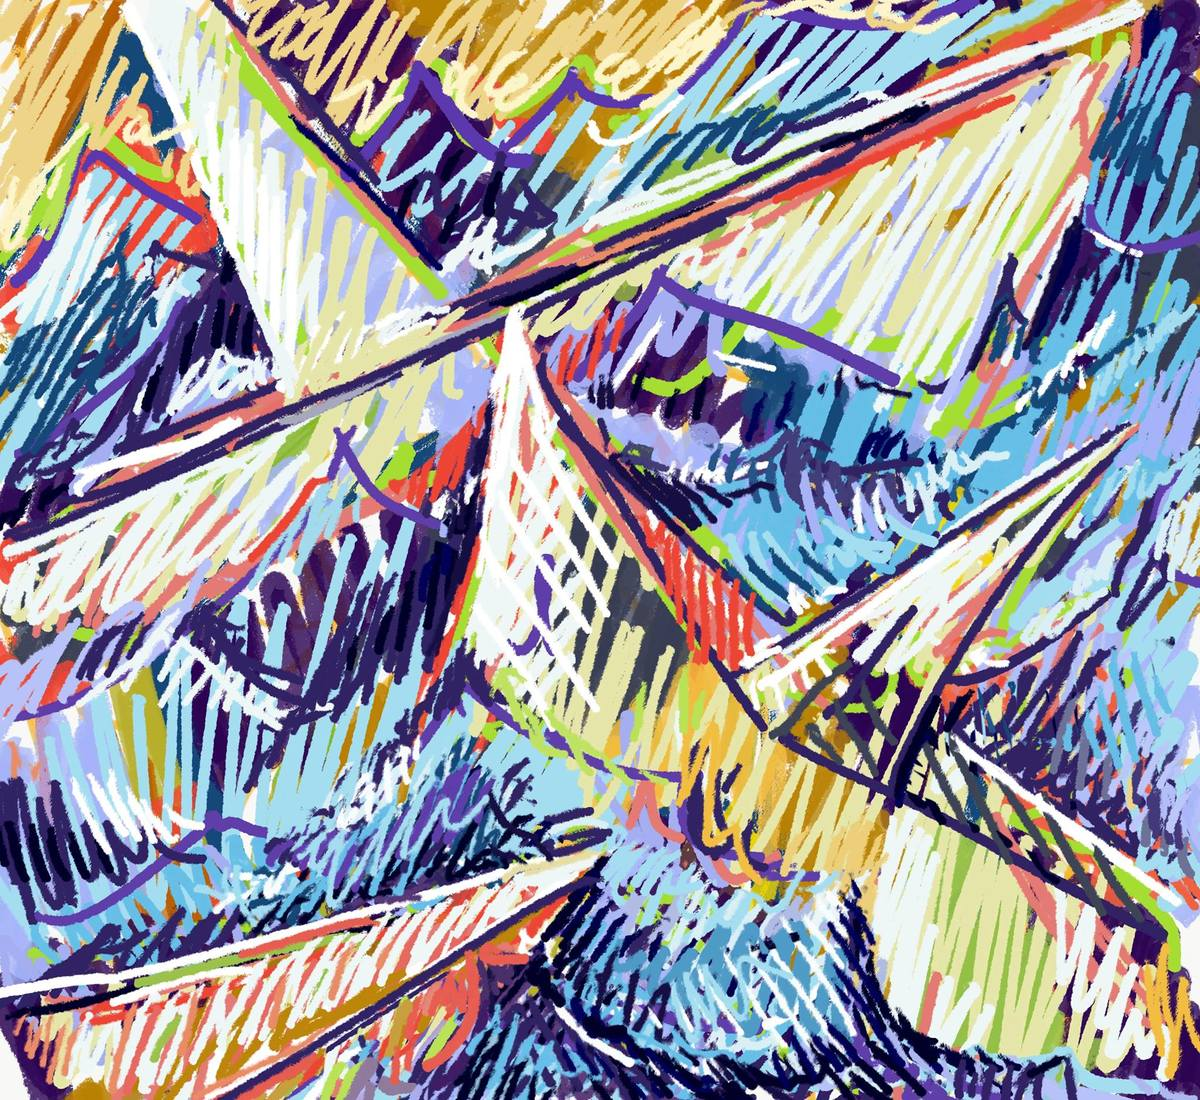 Digital Painting/Drawing Paper Boats